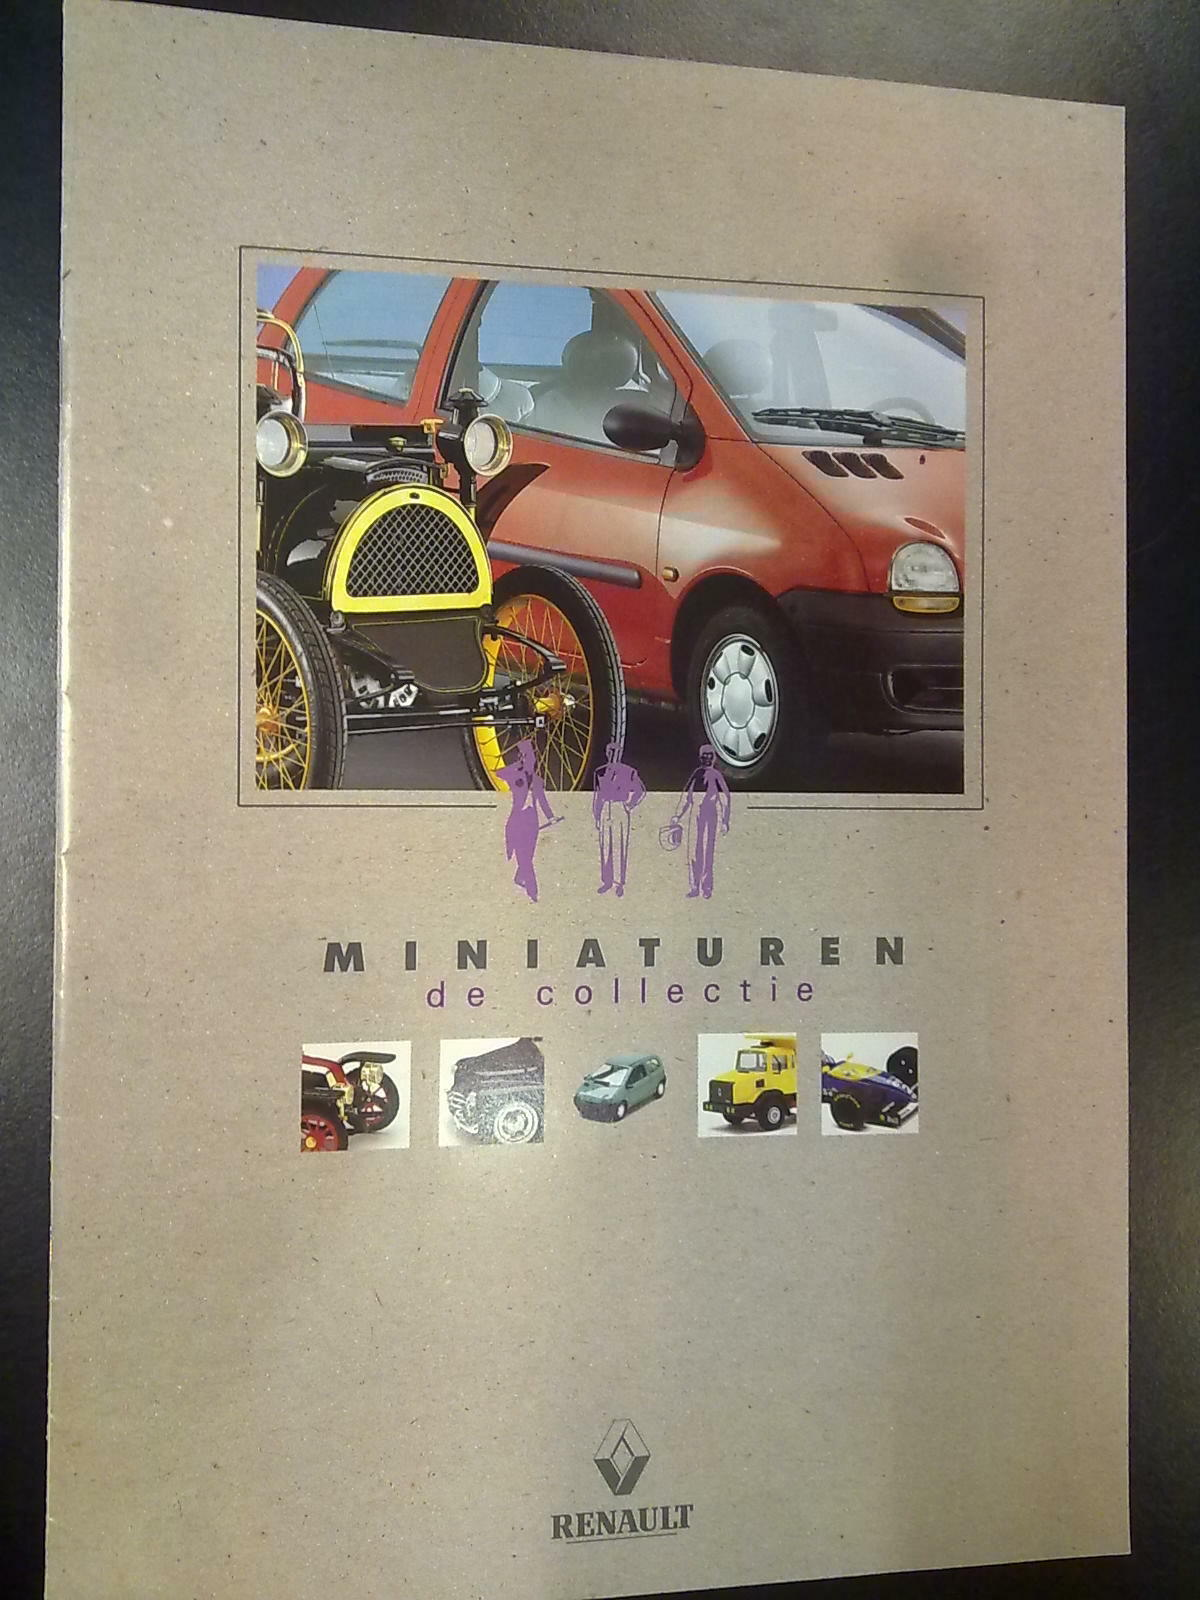 Renault miniaturen, de collectie 1994